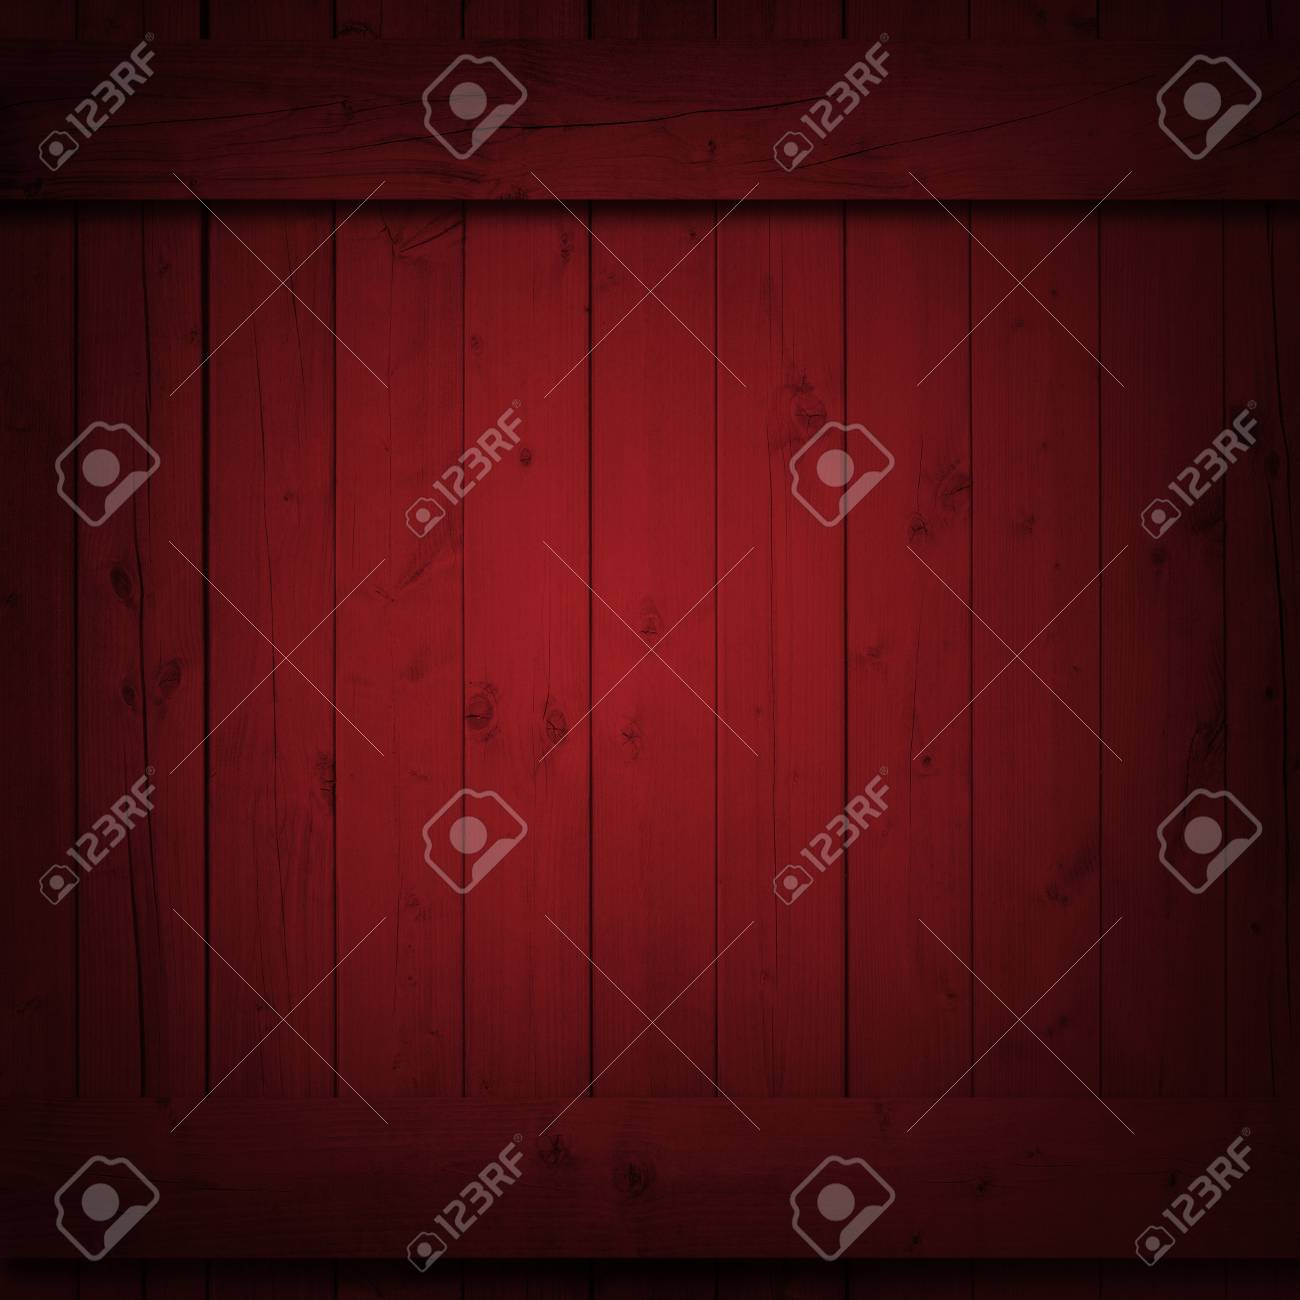 horizontal wood fence texture. Fine Fence Dark Red Wooden Wall Fence Texture With Horizontal And Vertical Planks  Stock Photo  In Horizontal Wood Fence Texture